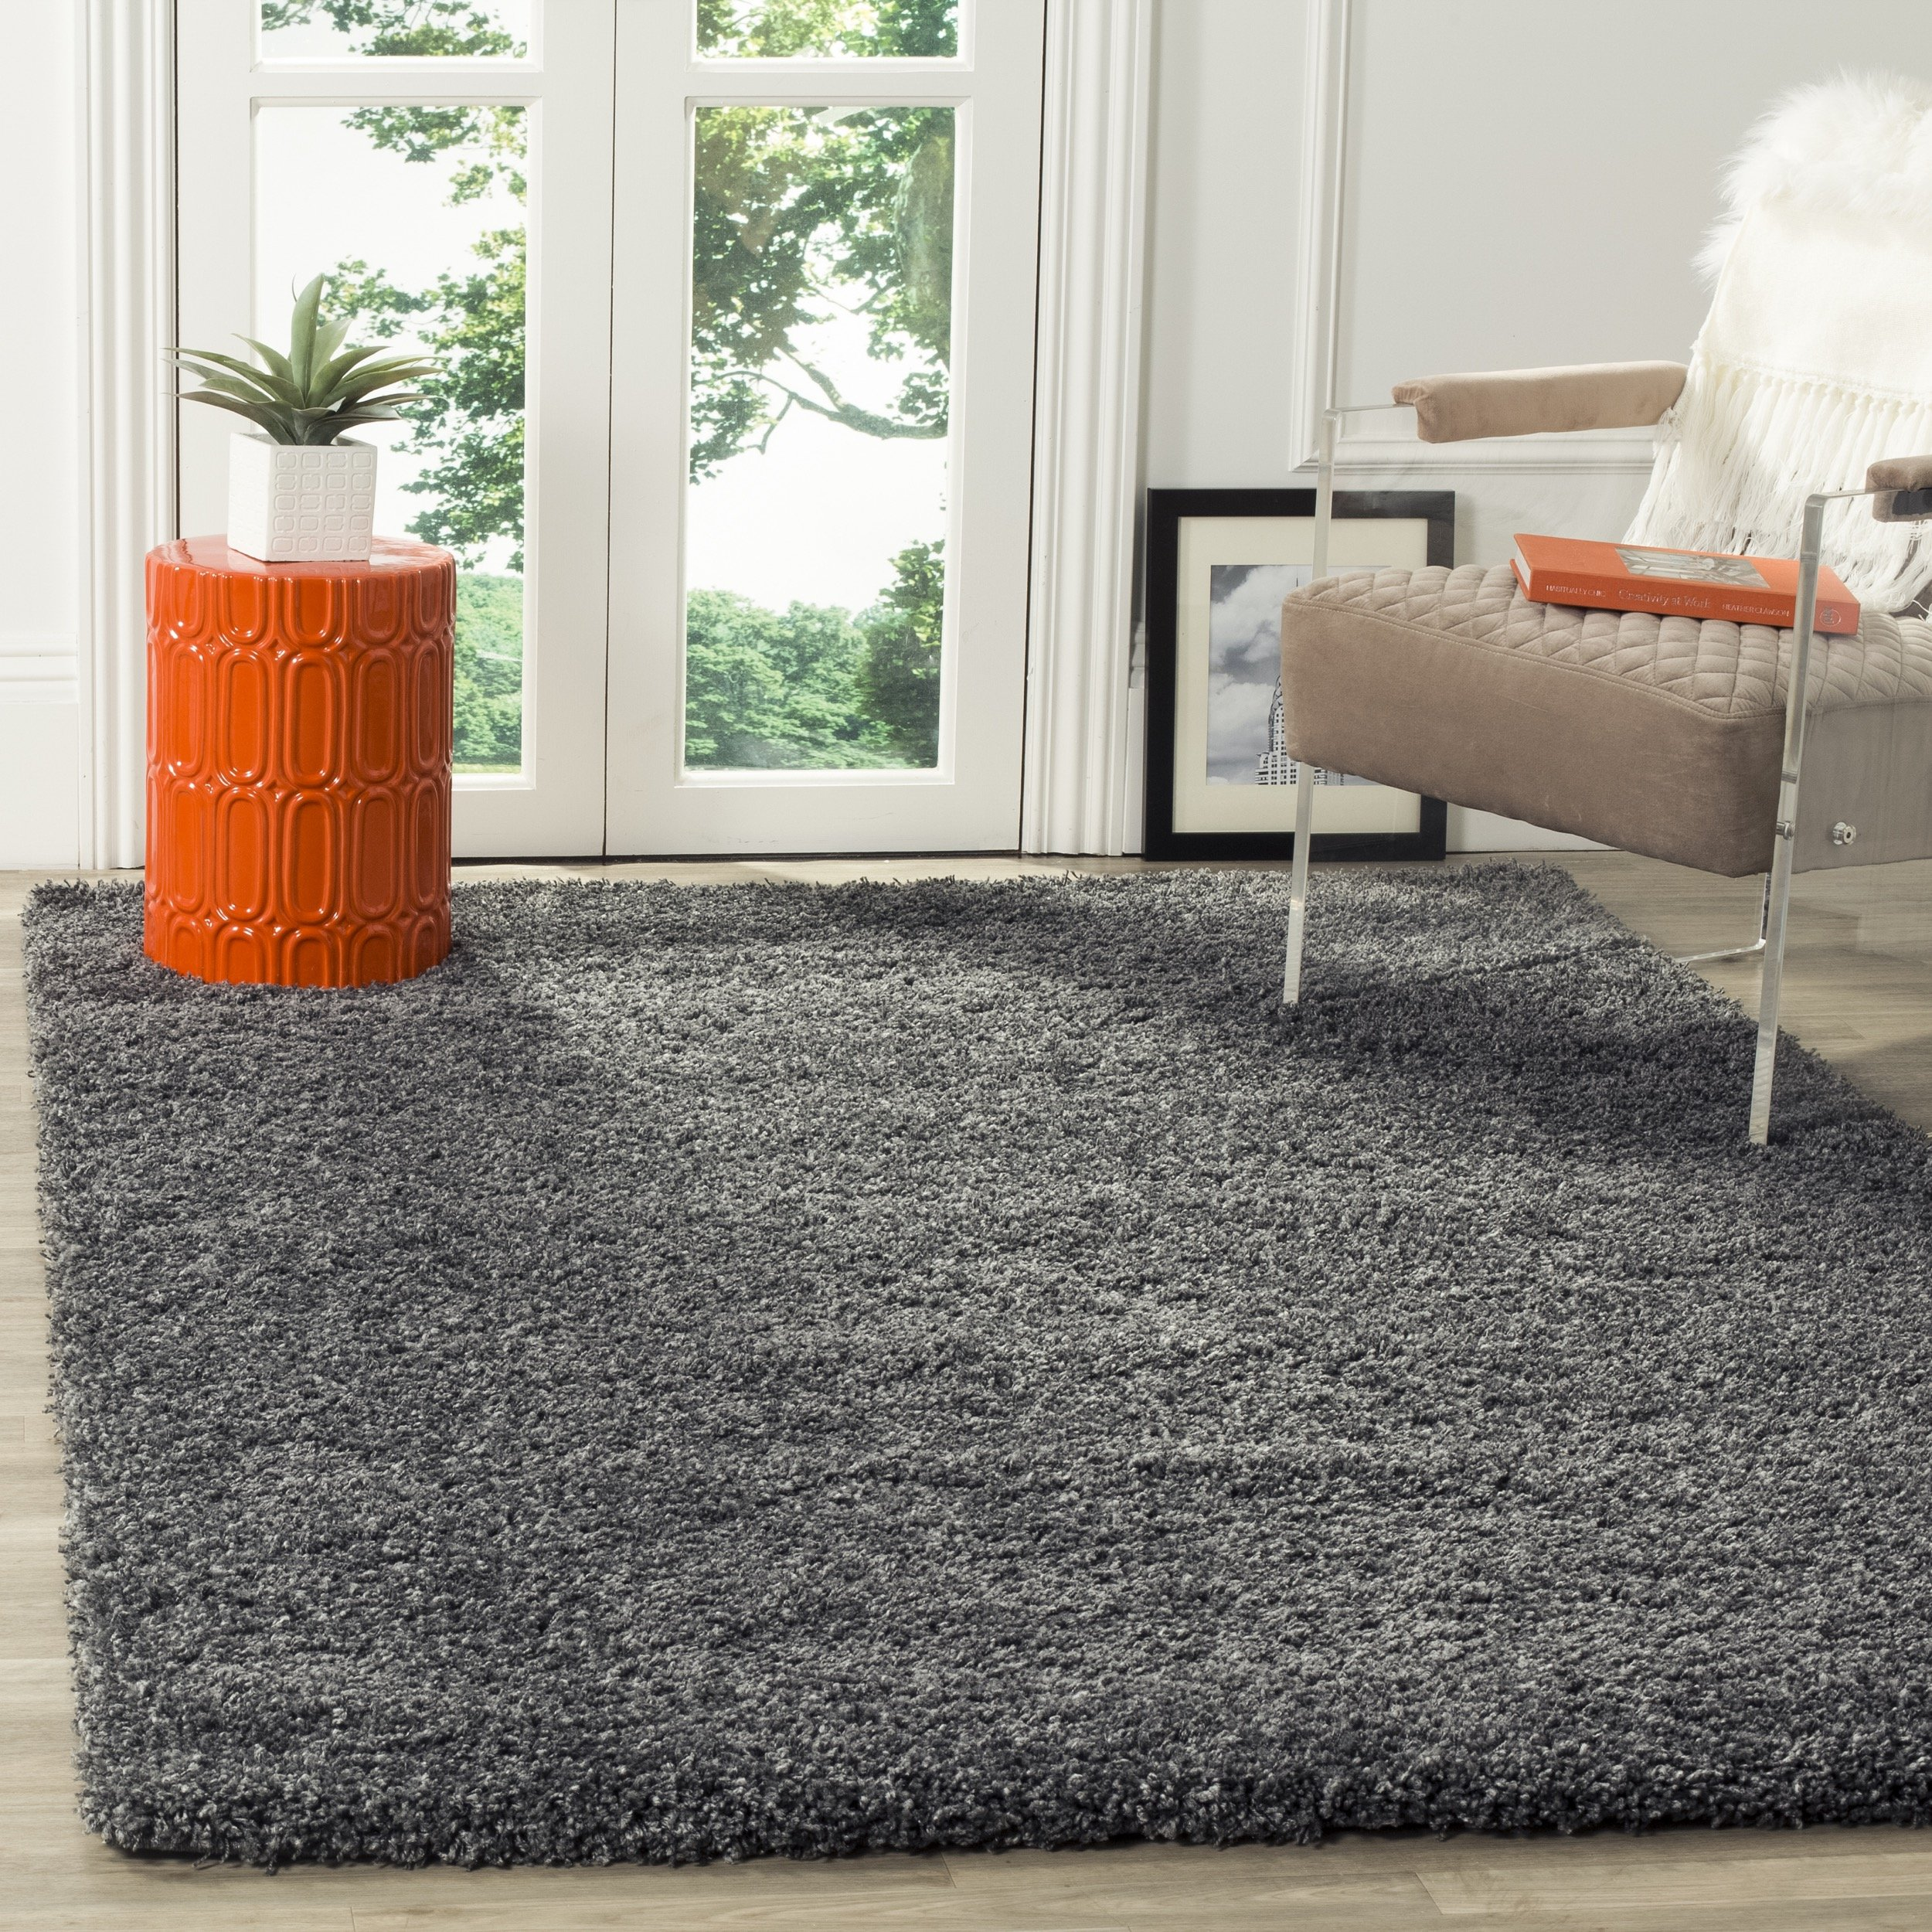 Safavieh California Shag Collection SG151-8484 Dark Grey Area Rug (8' x 10')